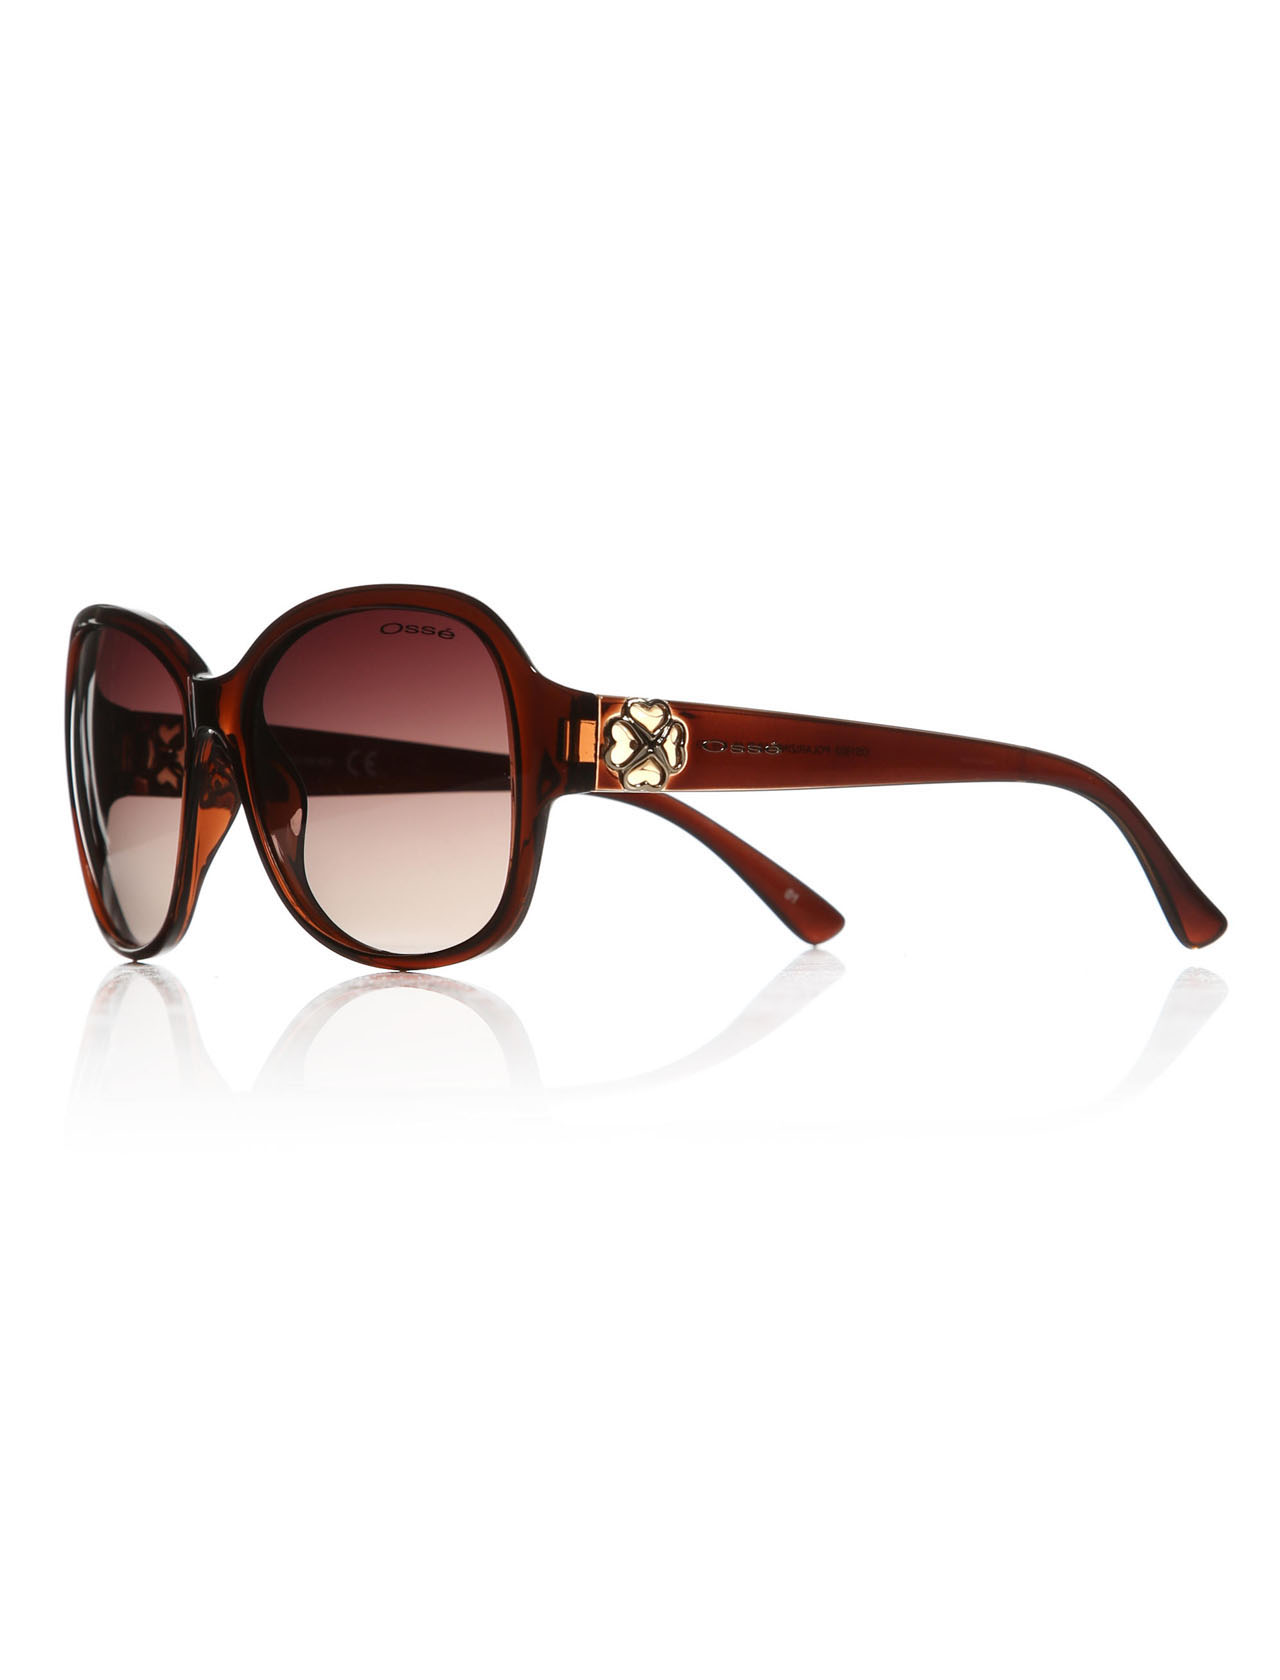 Women's sunglasses os 1922 03 bone Brown organic oval aval 59-16-139 osse